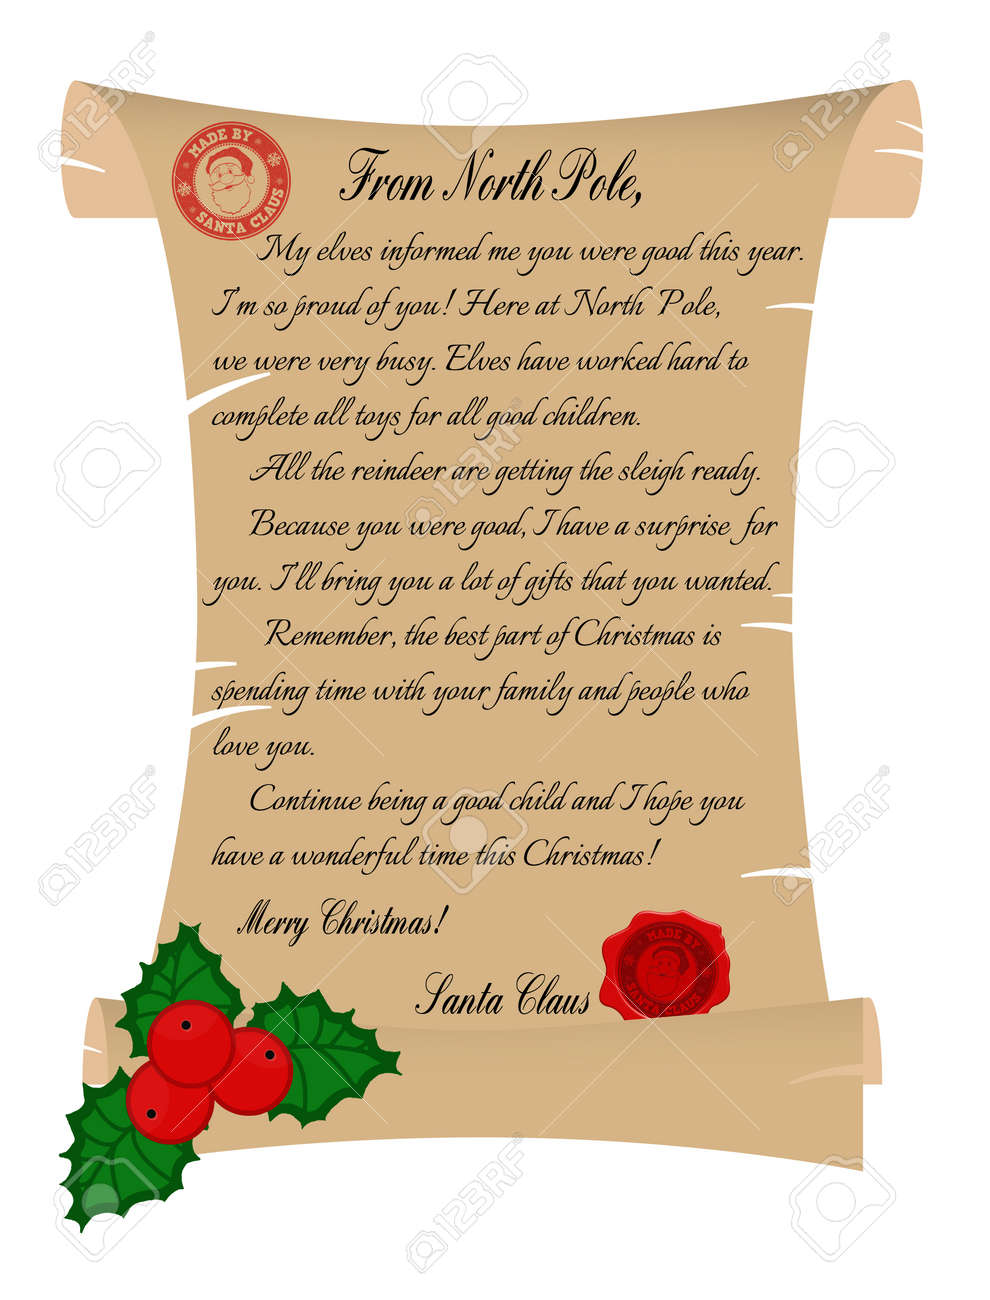 Vector Illustration Of A Letter From Santa Claus On White Background Royalty Free Cliparts Vectors And Stock Illustration Image 34655577